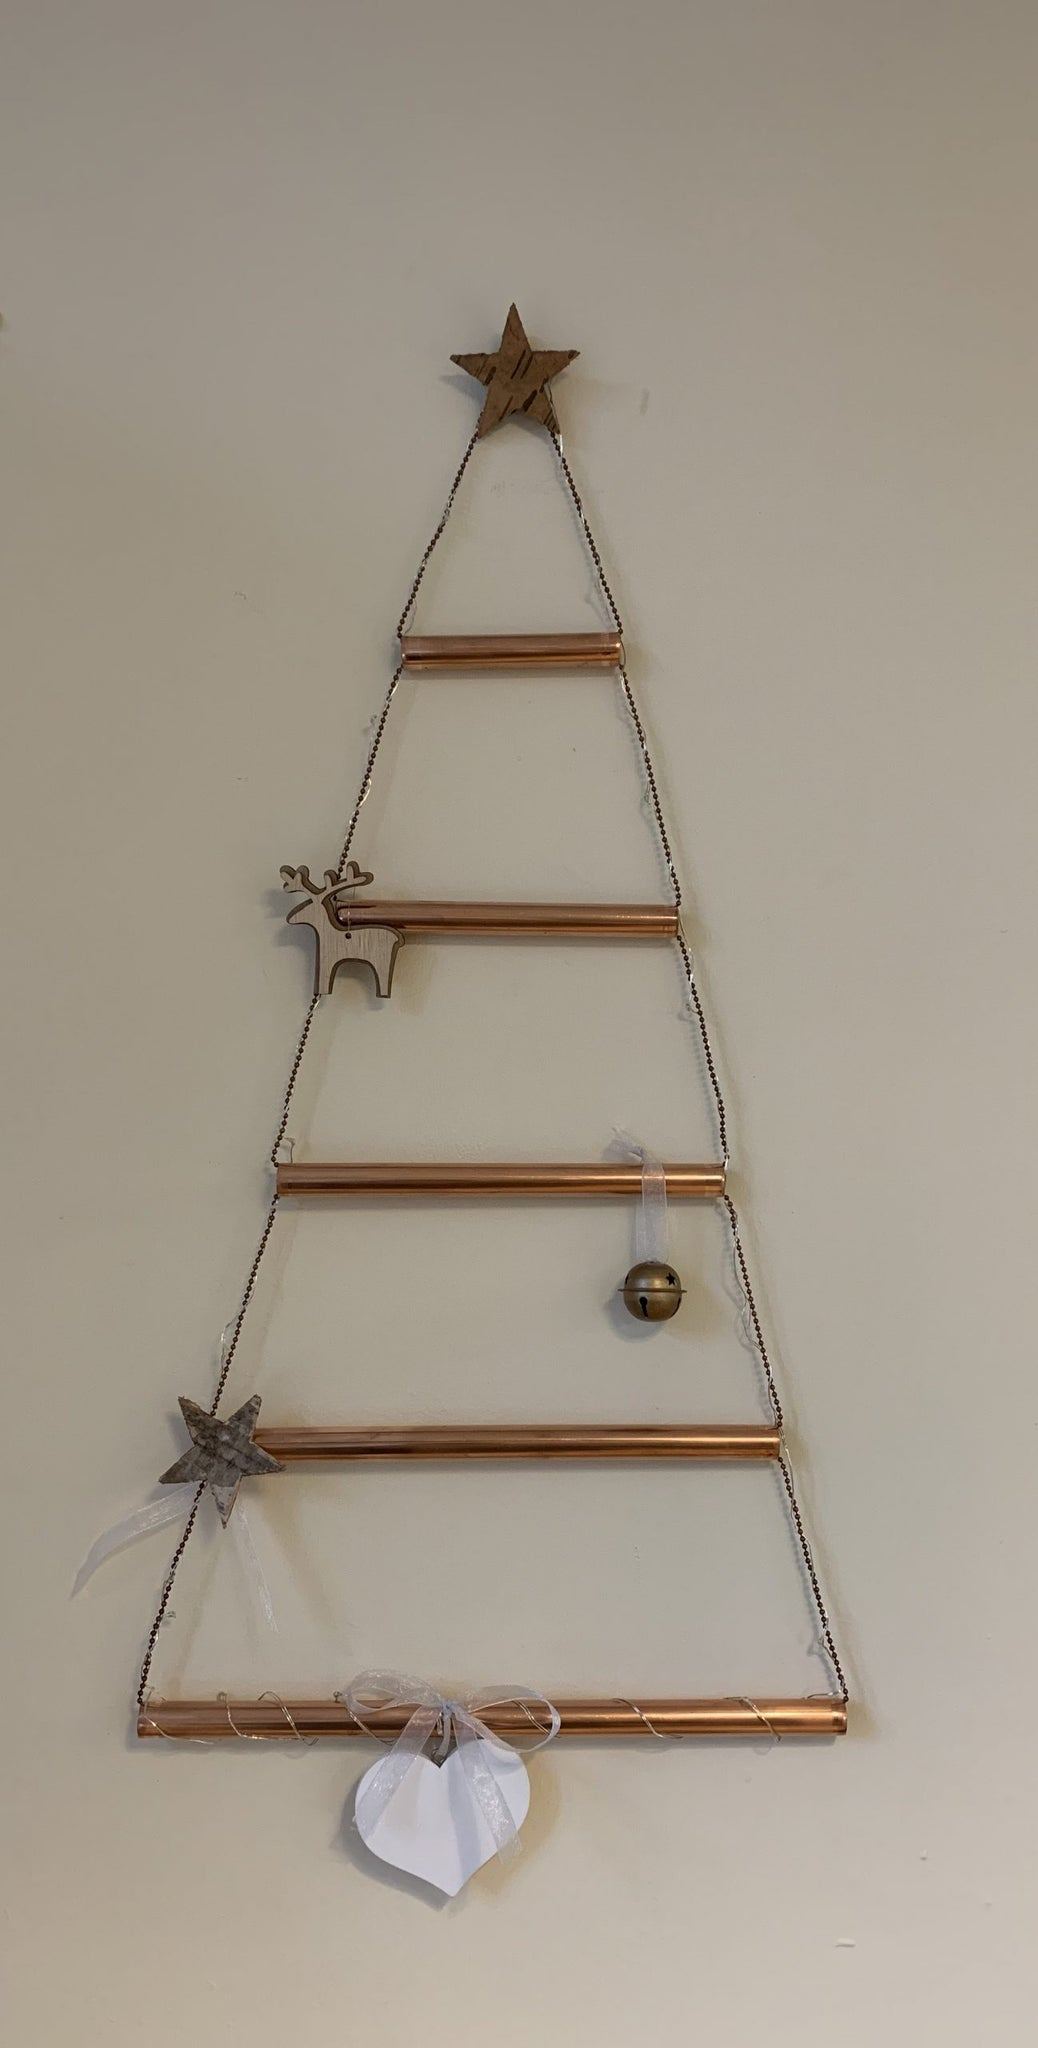 Handmade Copper Christmas Tree c/w lithium battery powered lights